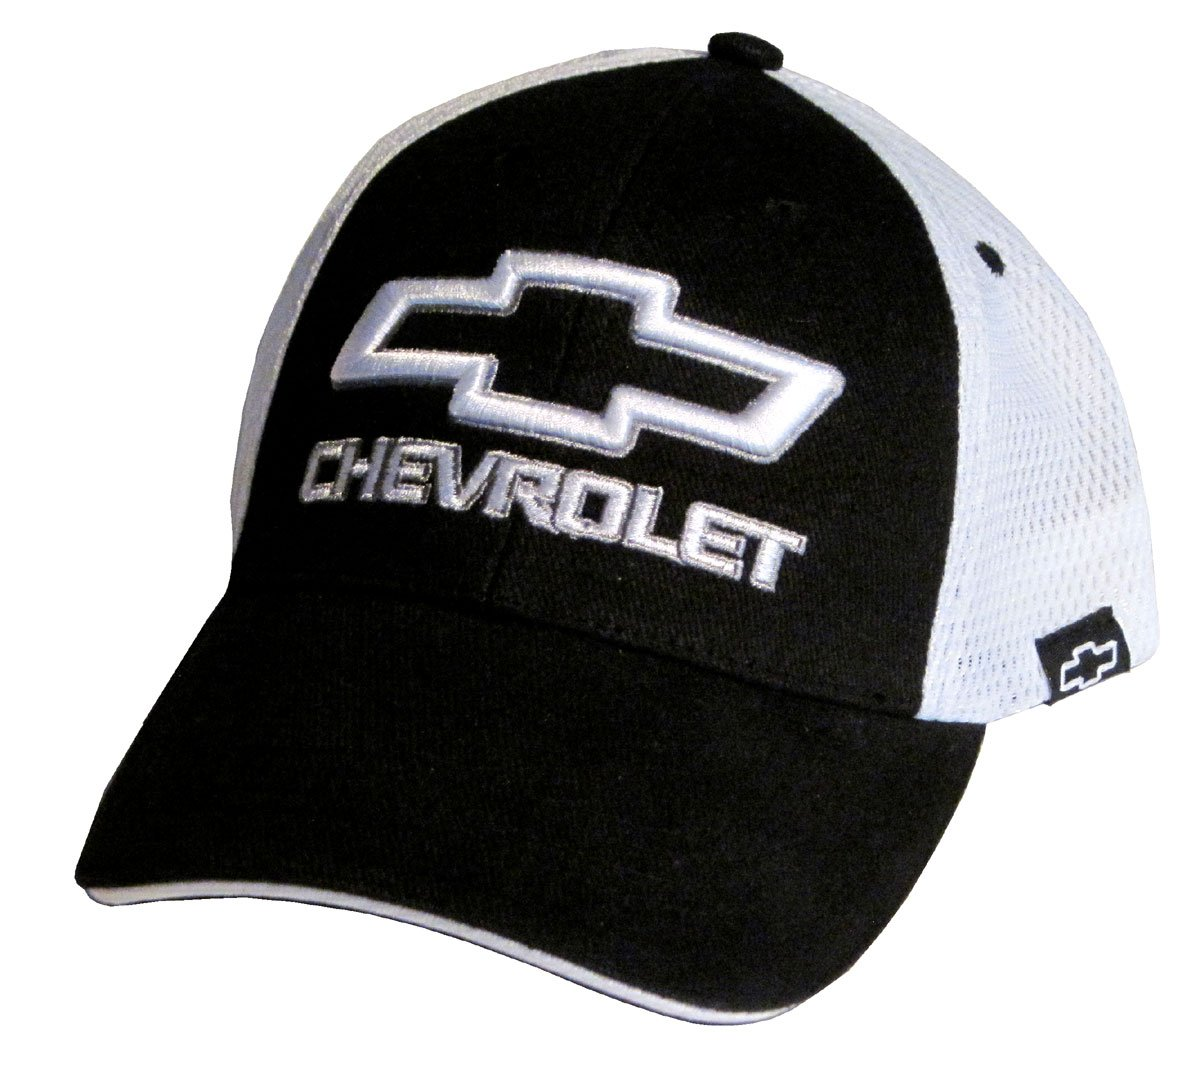 2 Items 1 Hat and 1 Driving Style Decal Gregs Automotive Chevrolet Bowtie Hat Cap in Black//White Mesh Back Chevy Bundle with Decal